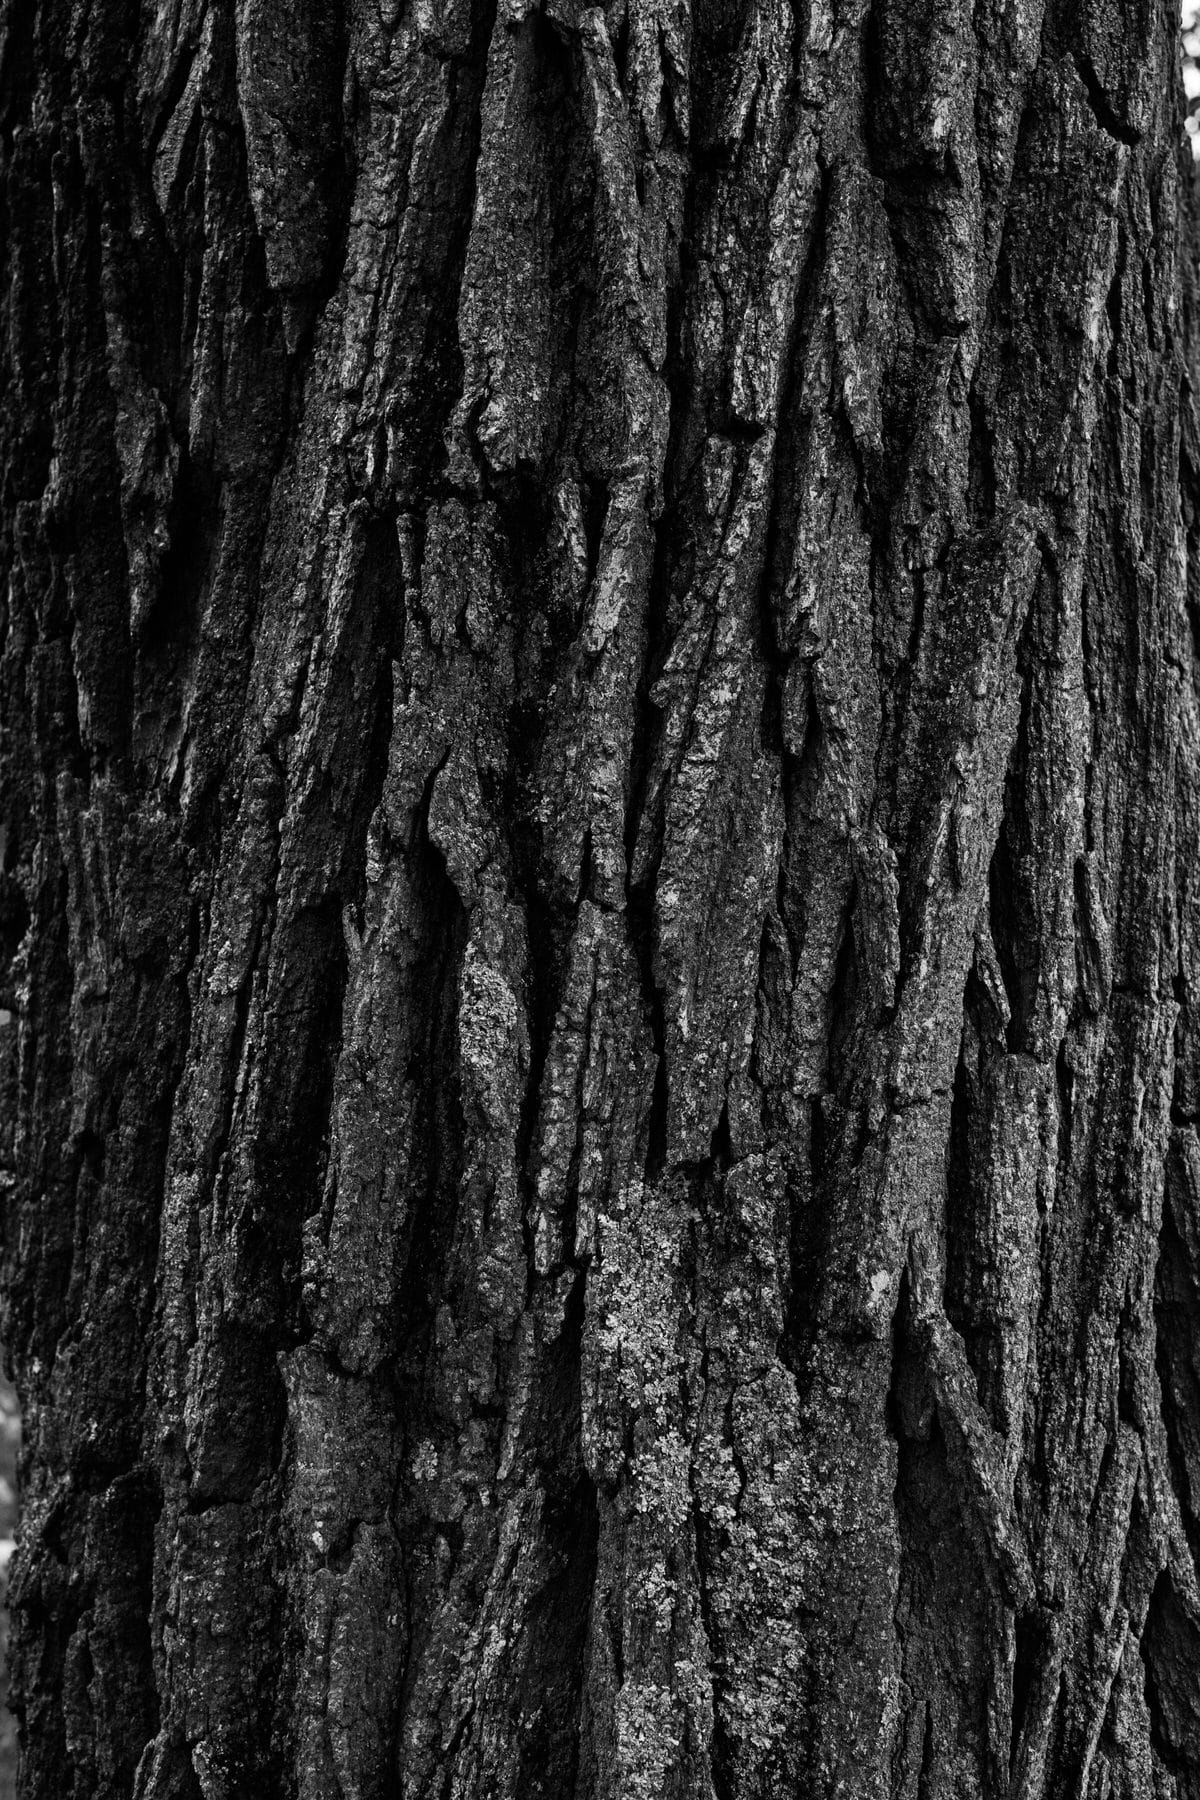 Oak-Tree-Fond-du-Lac-Wisconsin-black-and-white-fine-art-photography-by-Studio-L-photographer-Laura-Schneider-_12016